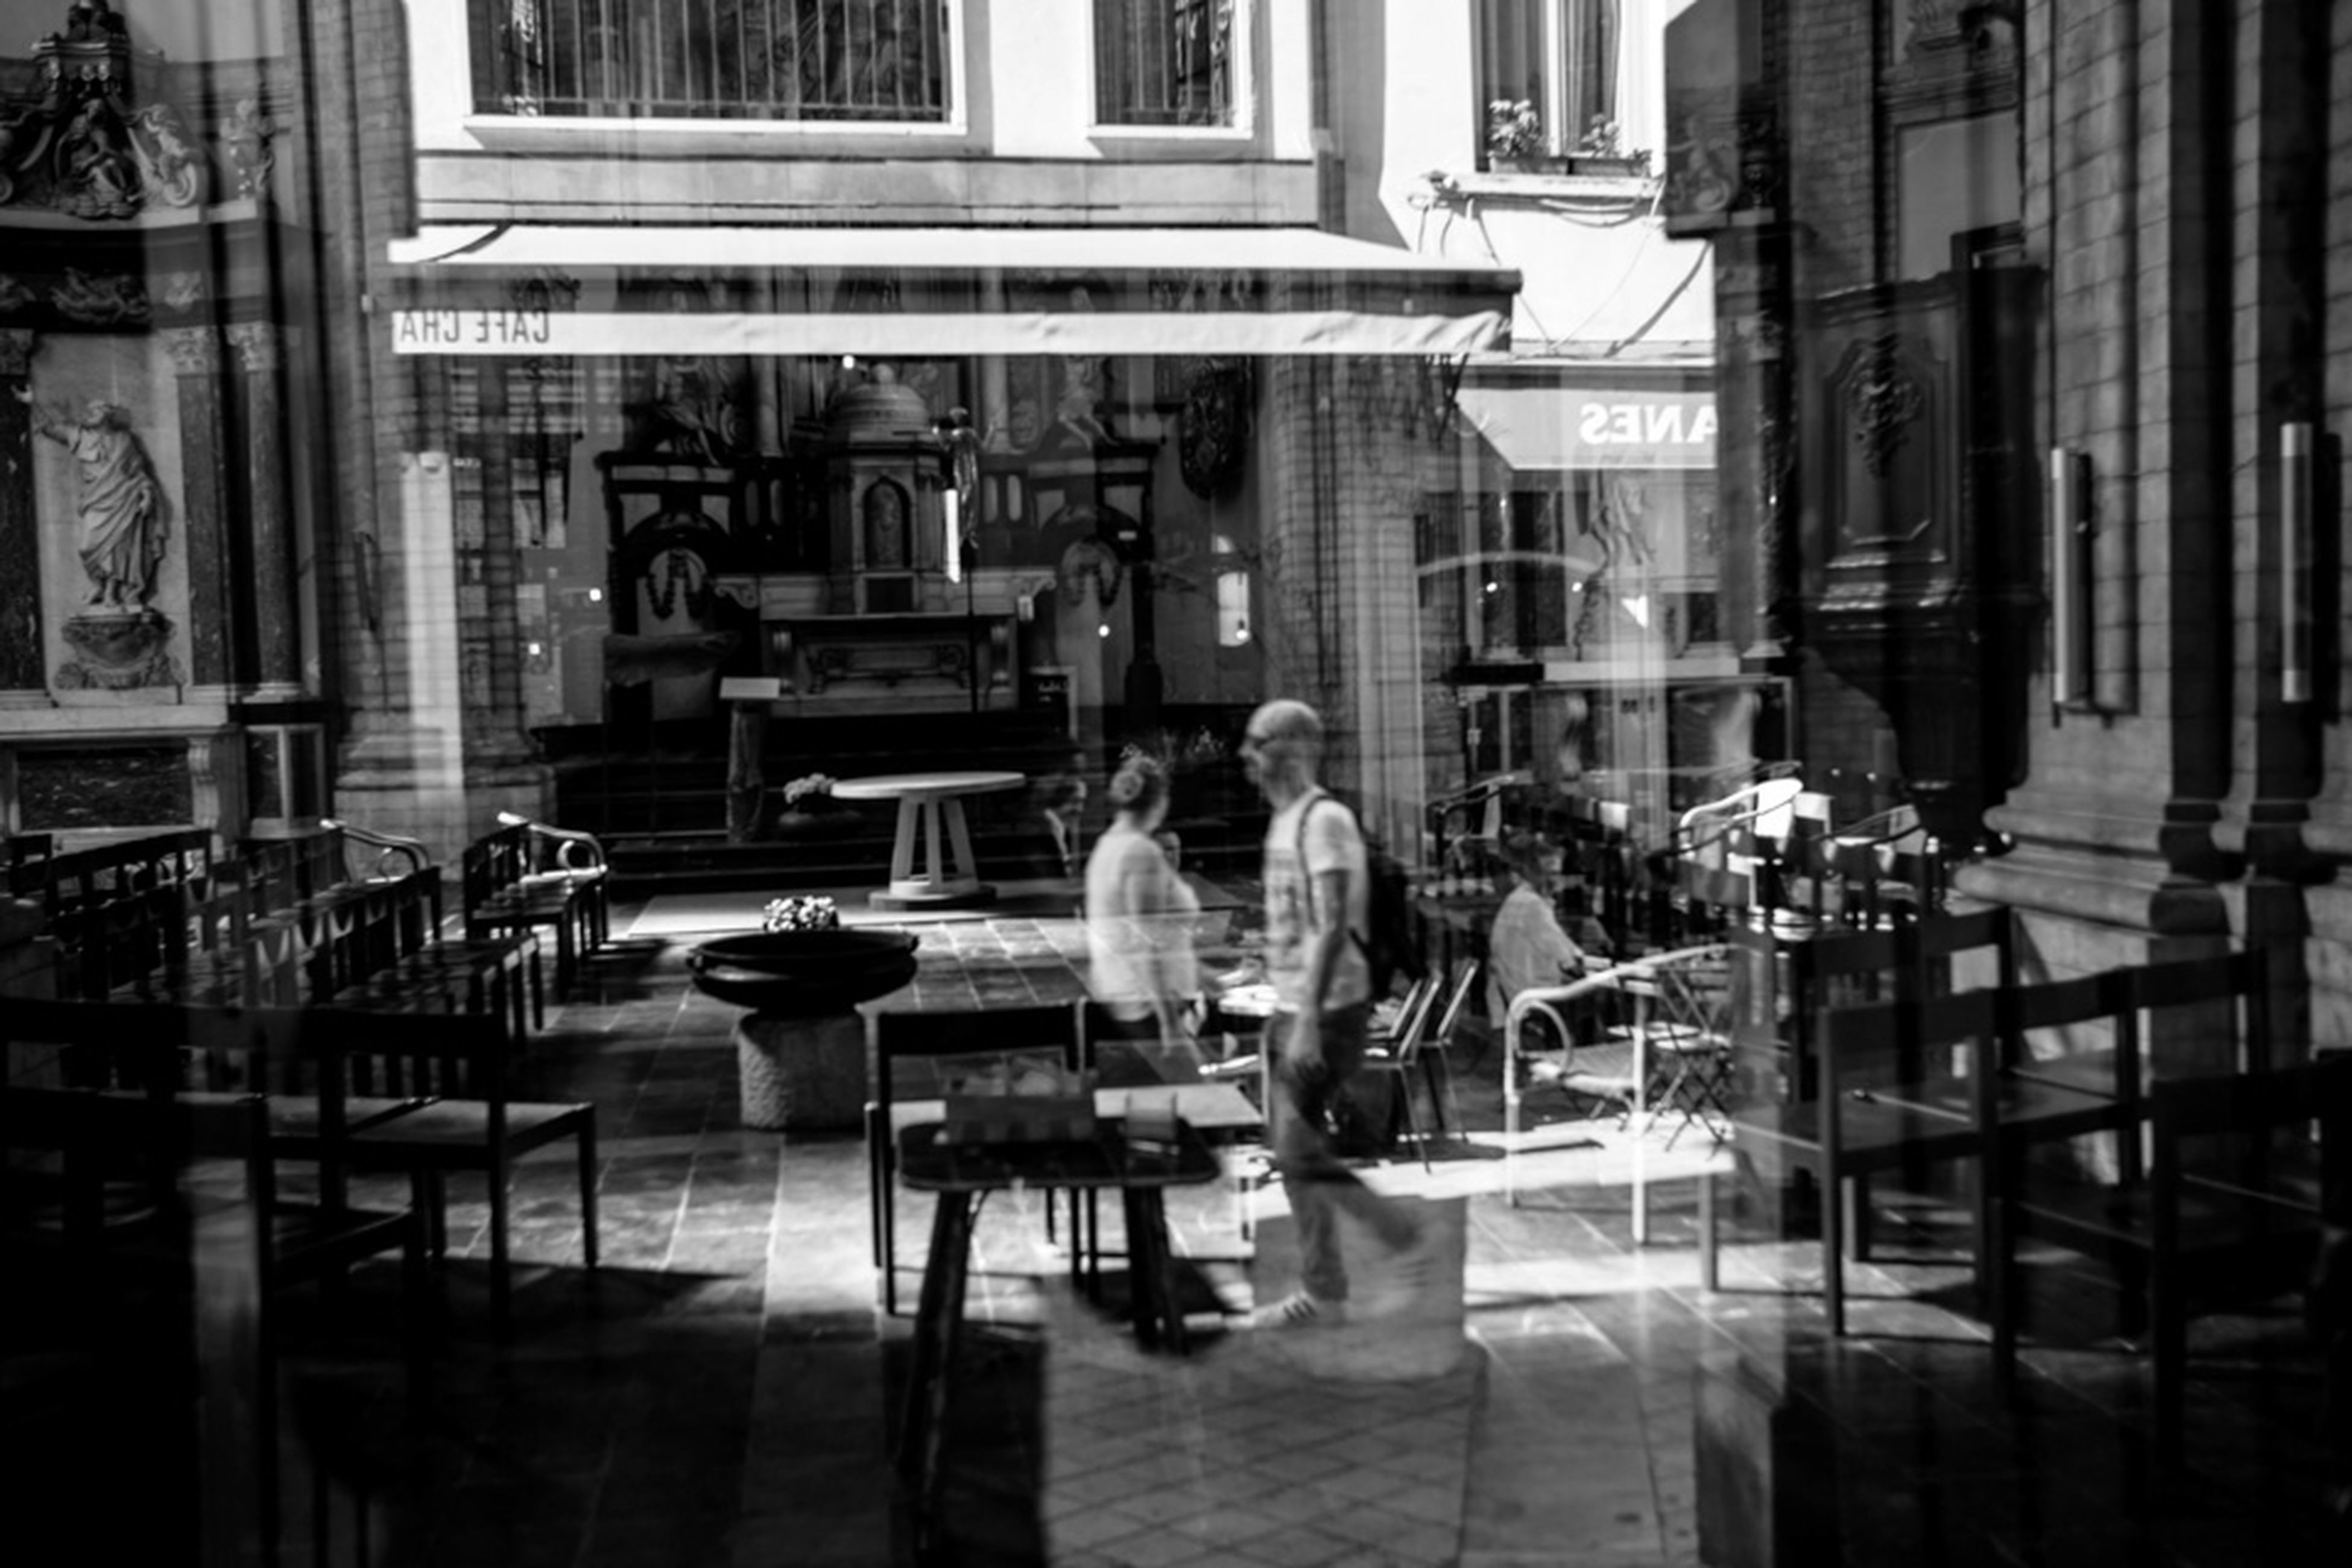 real people, building exterior, architecture, reflection, built structure, chair, table, window, women, day, lifestyles, sitting, outdoors, full length, men, city, one person, people